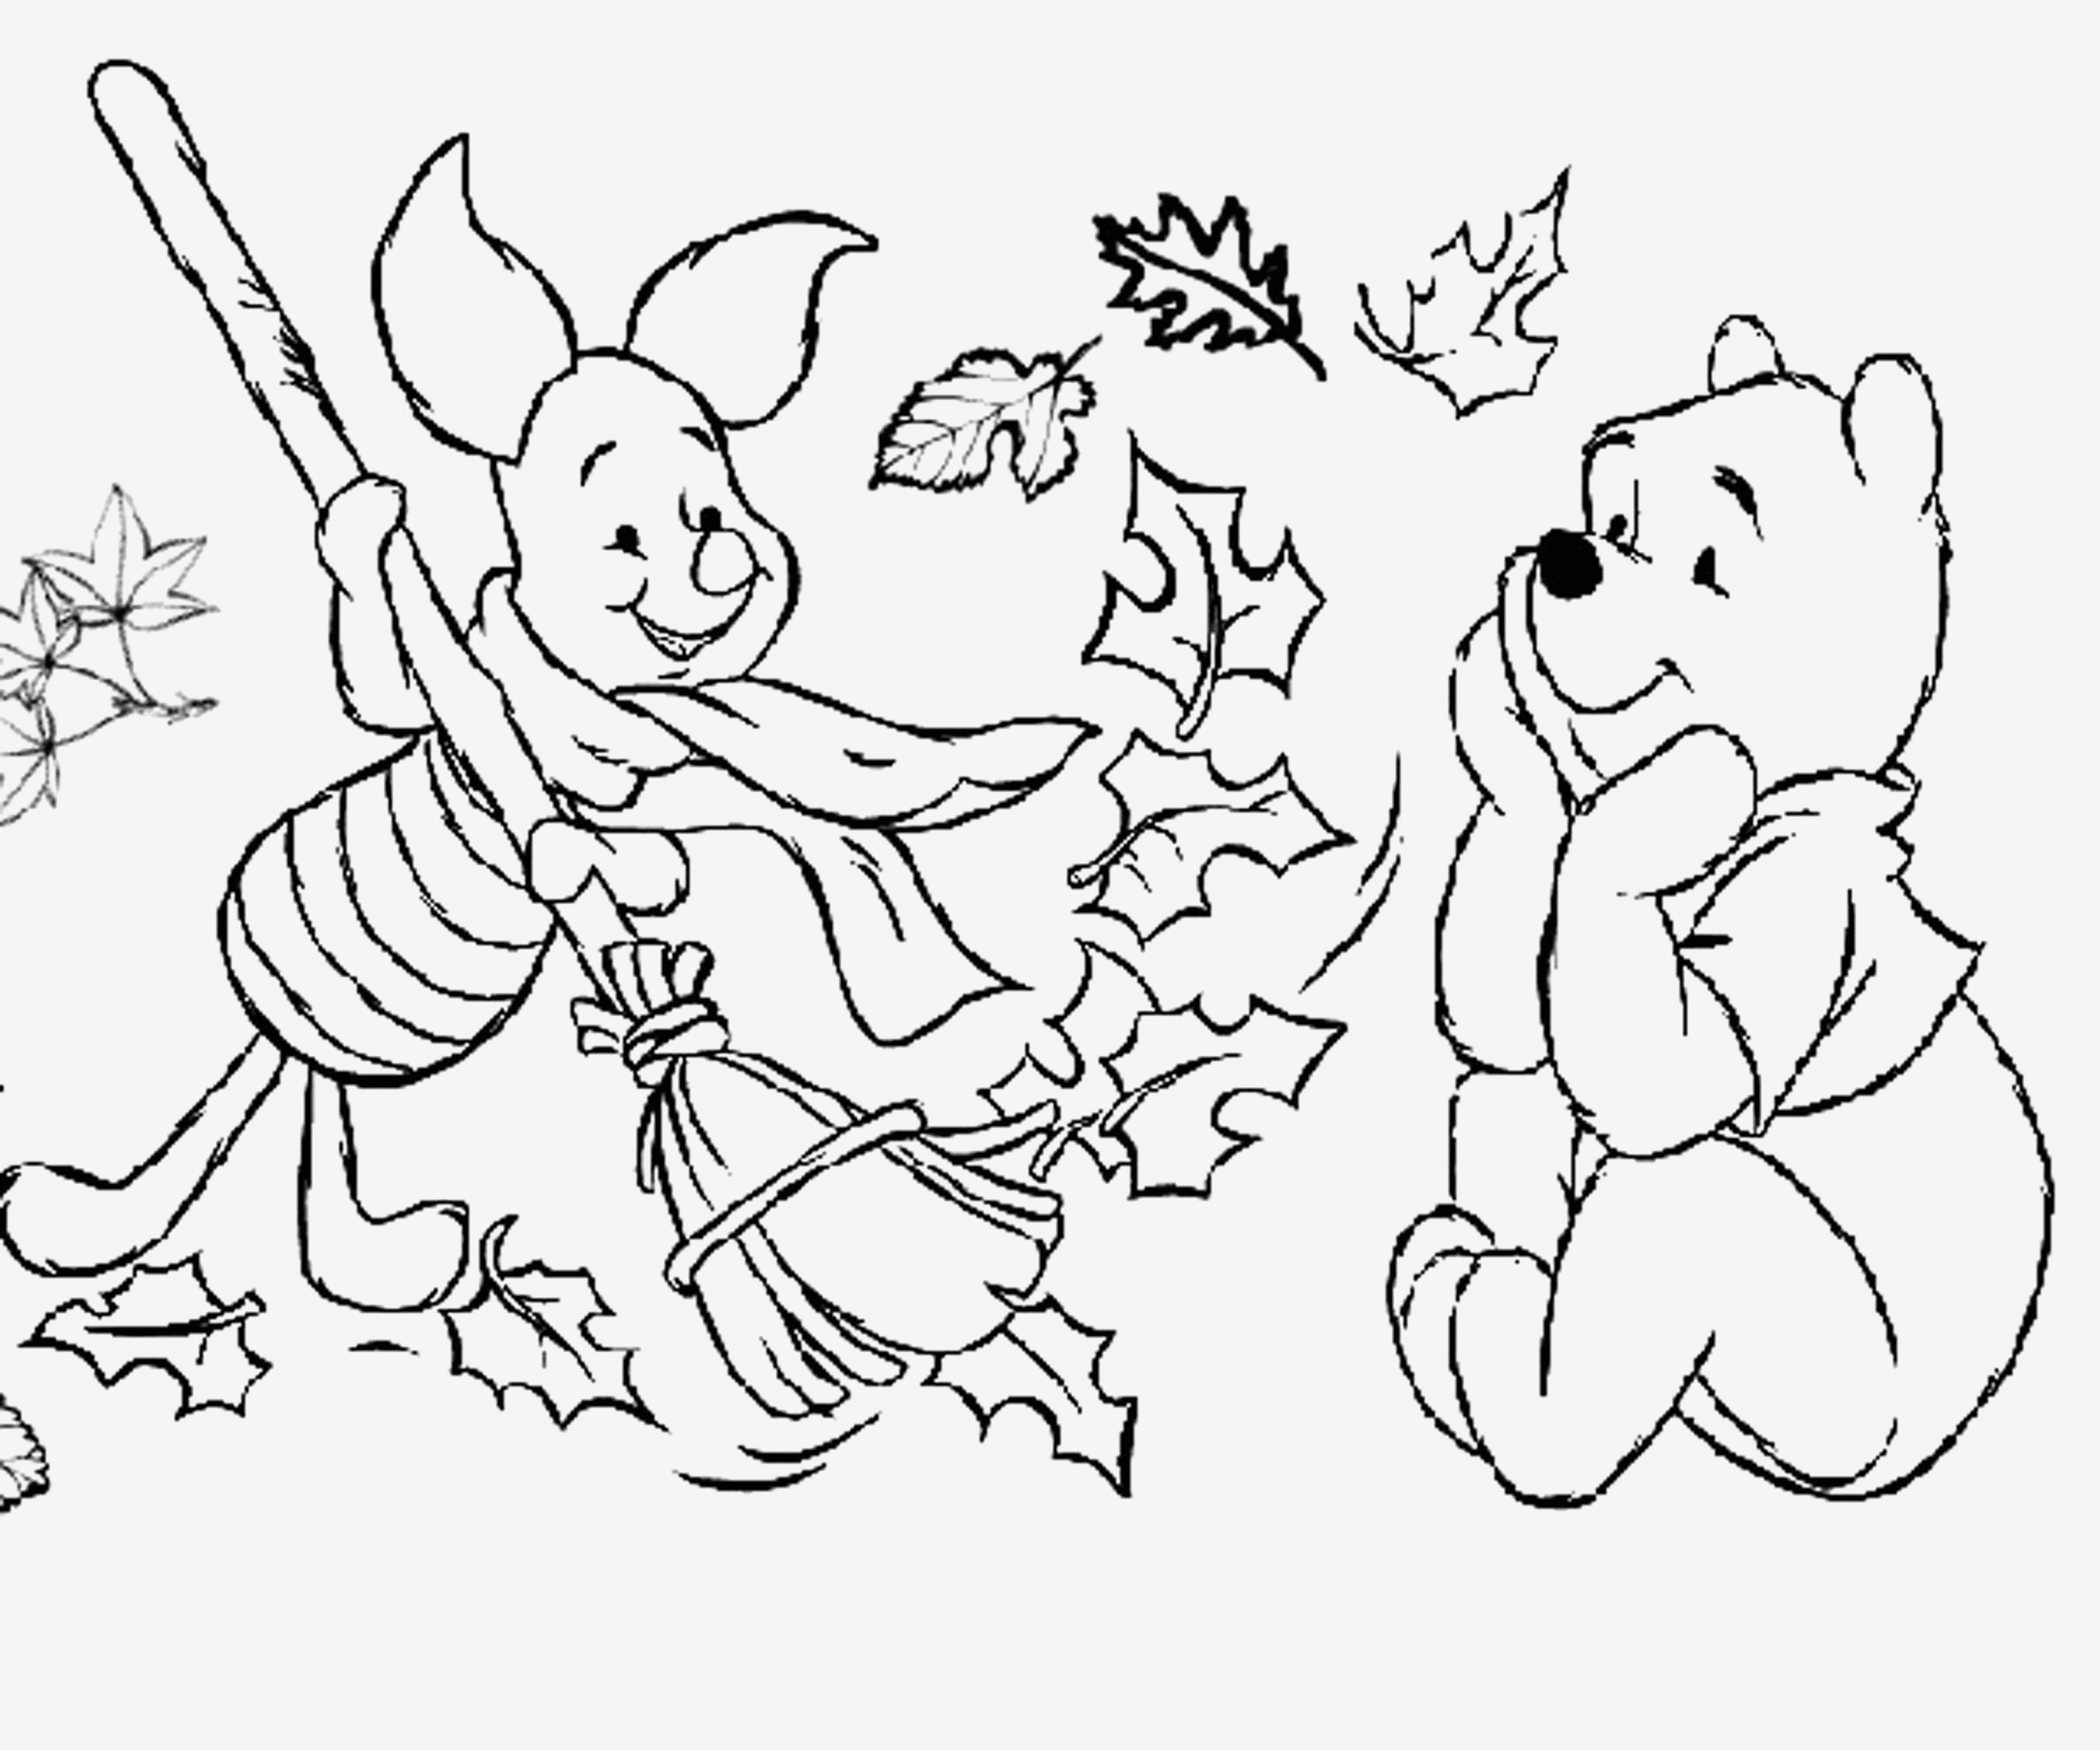 free printable coloring pages for toddlers Collection-Easy Adult Coloring Pages Free Print Simple Adult Coloring Pages Elegant Best Coloring Page Adult Od Kids 5-p